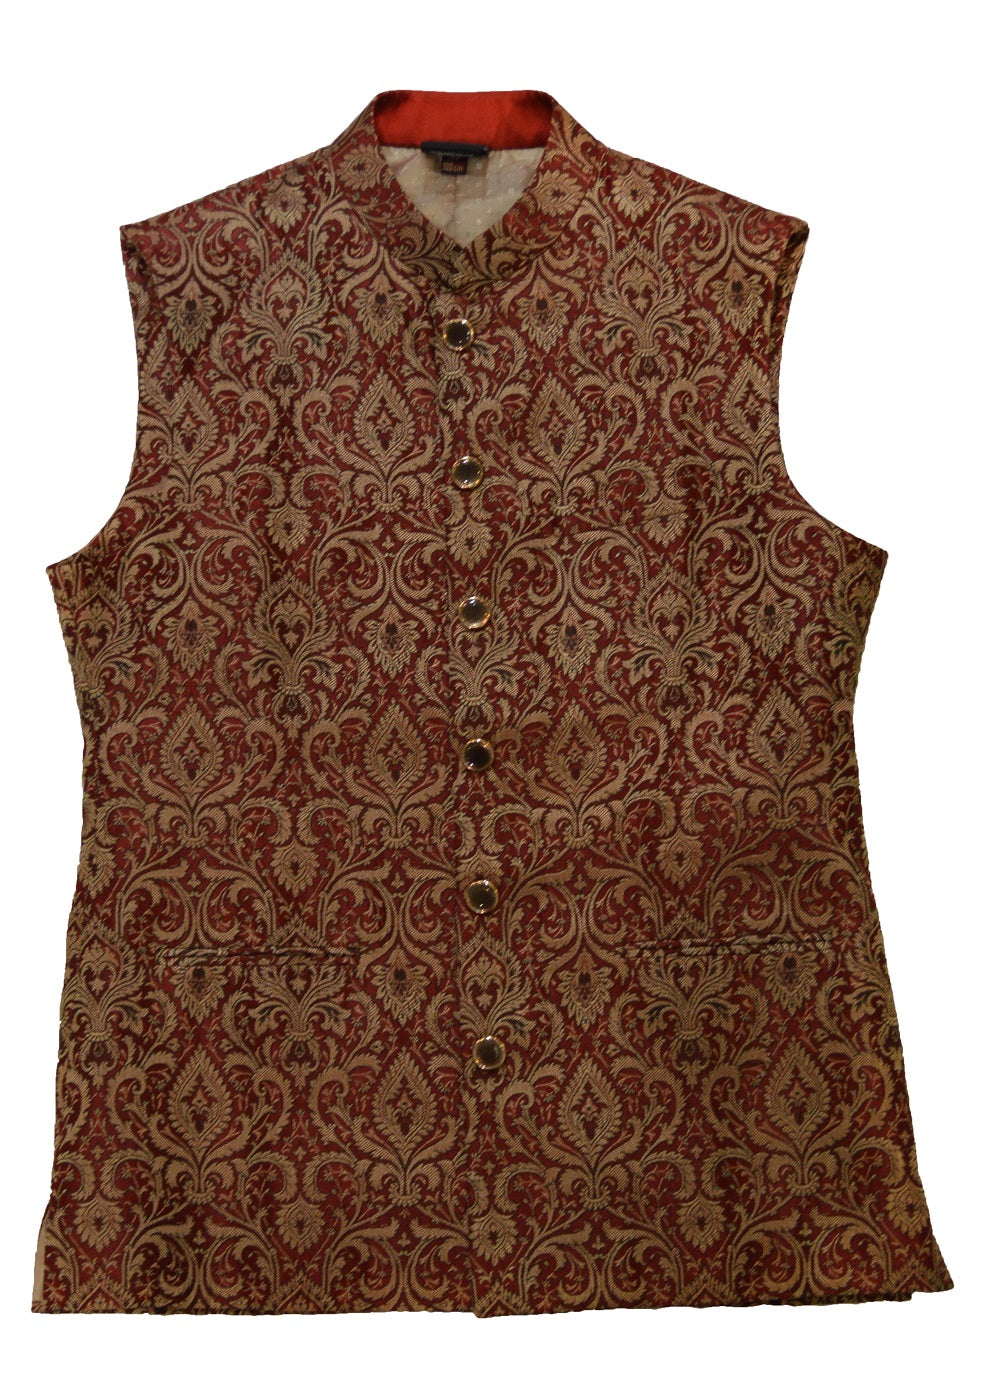 Red and Gold Brocade Waistcoat